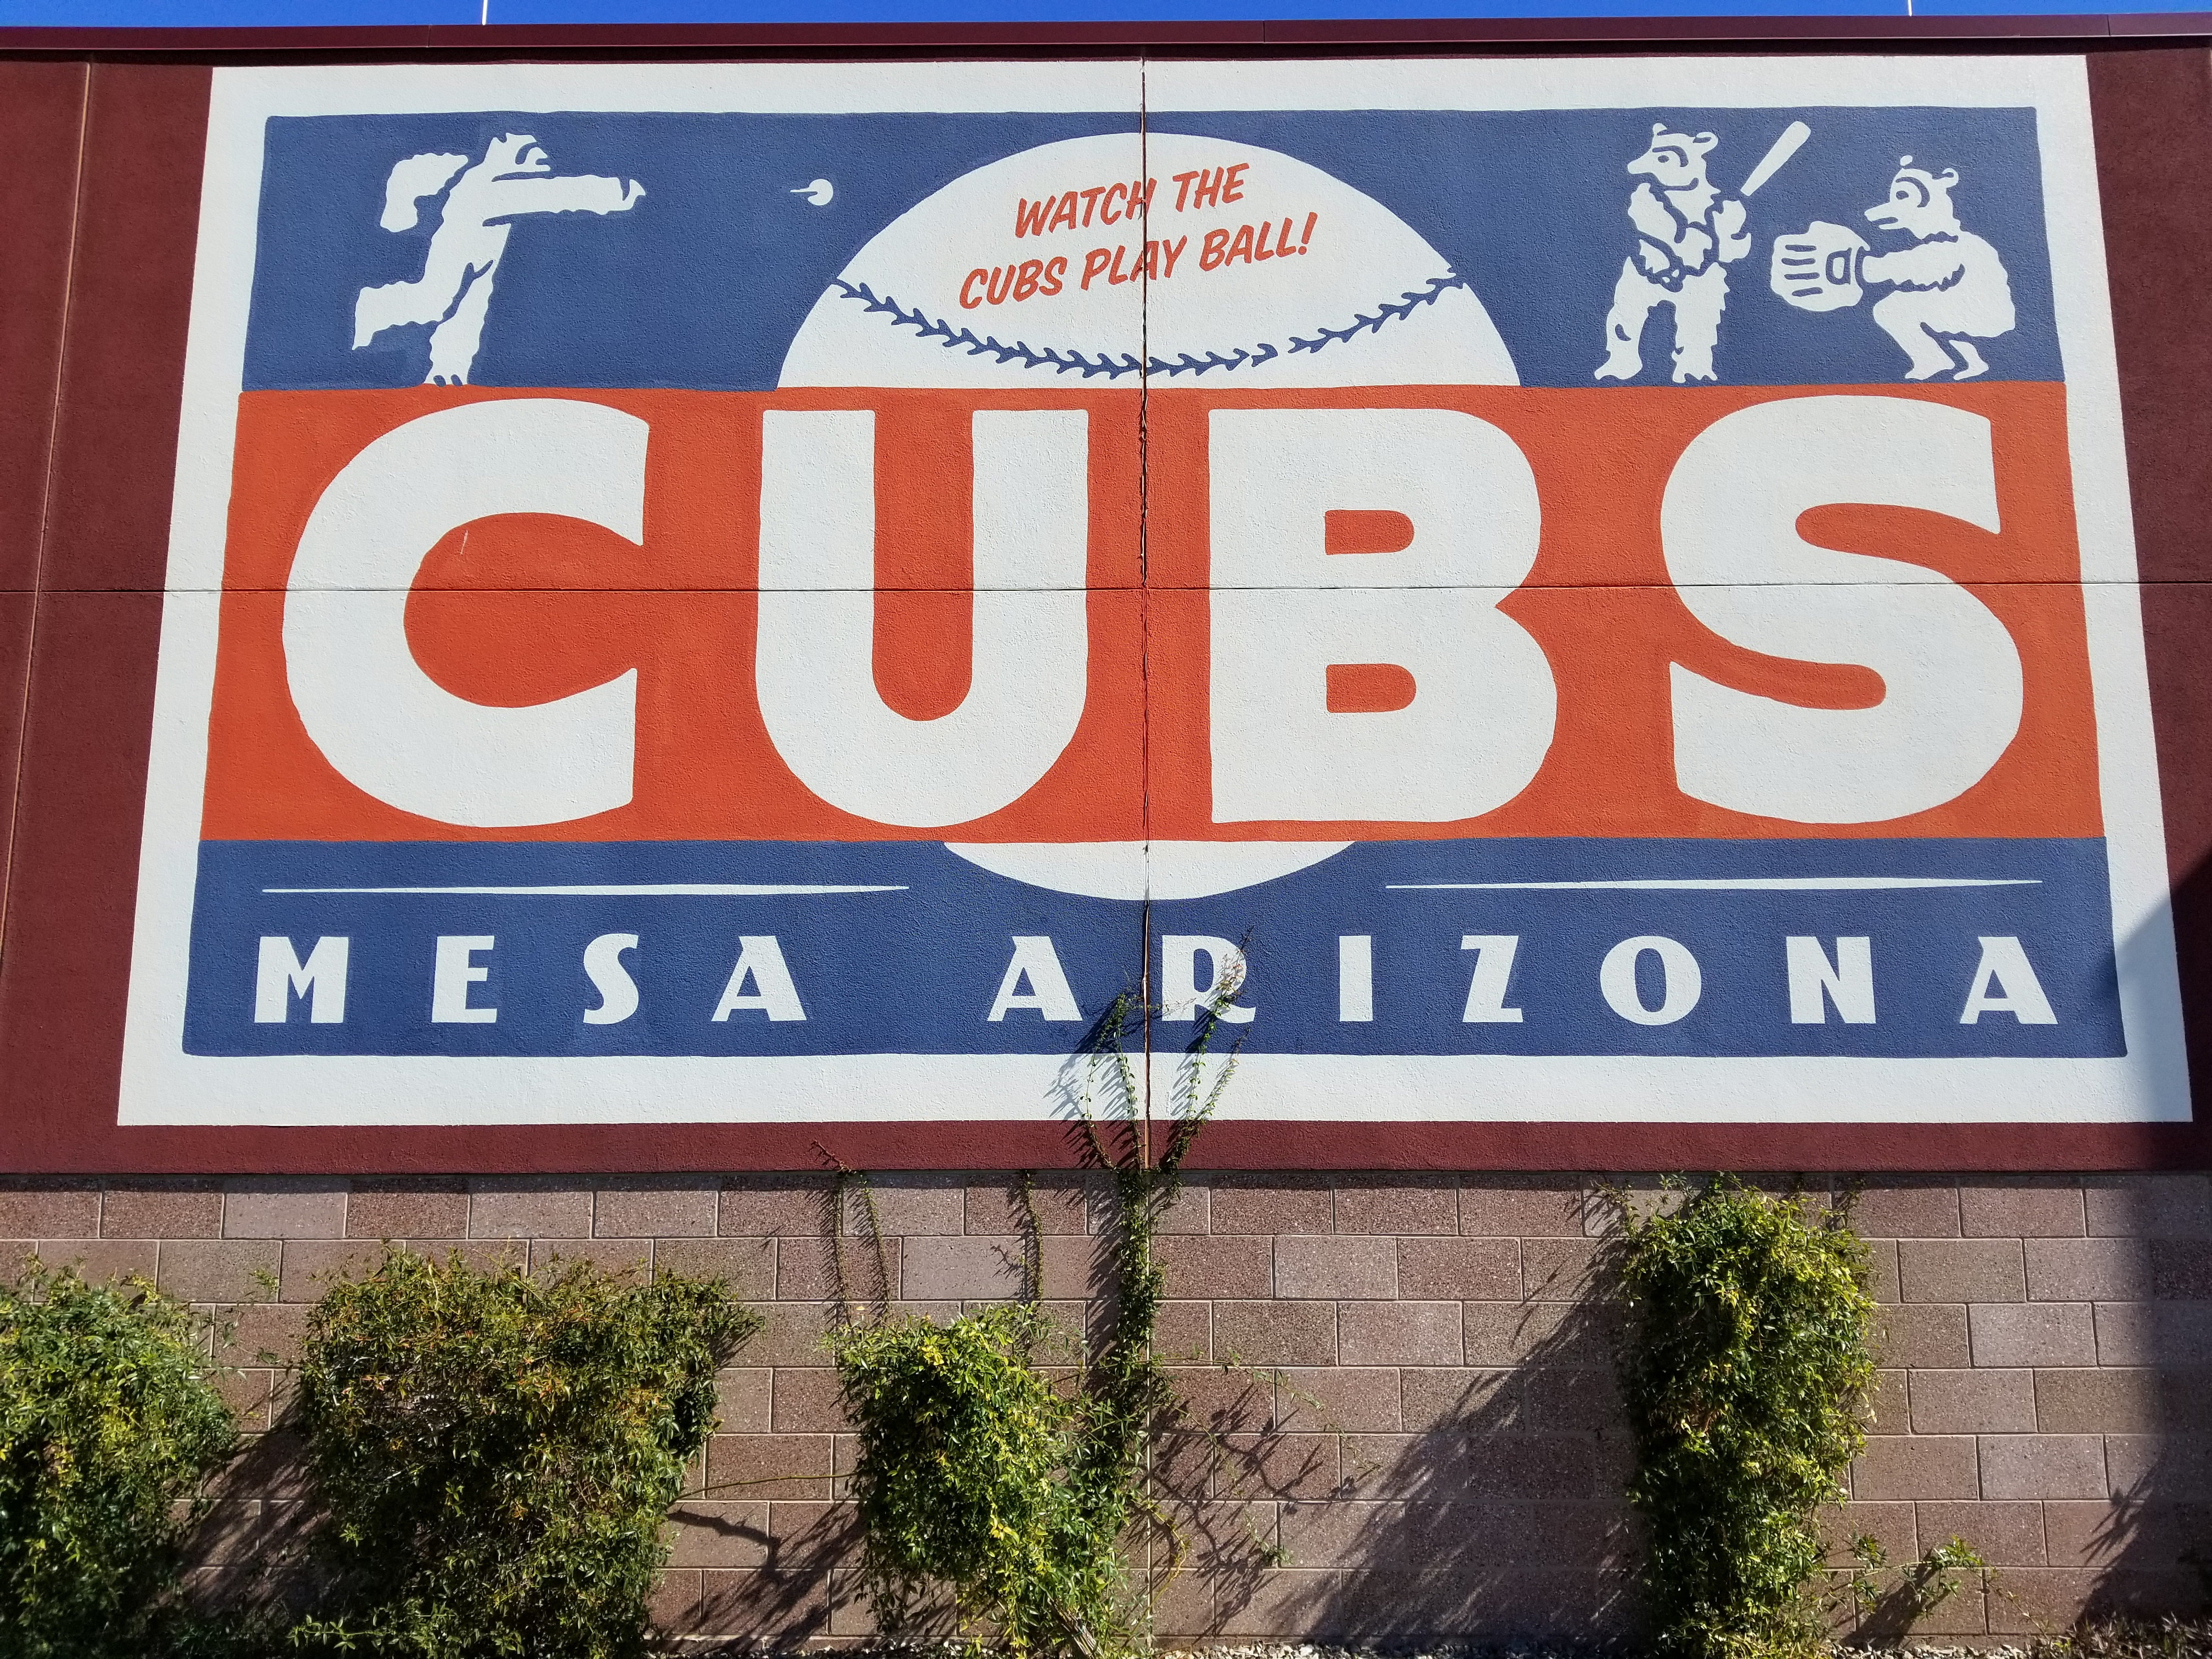 Icubs Schedule 2020 Cubs announce 2020 spring training schedule   Bleed Cubbie Blue